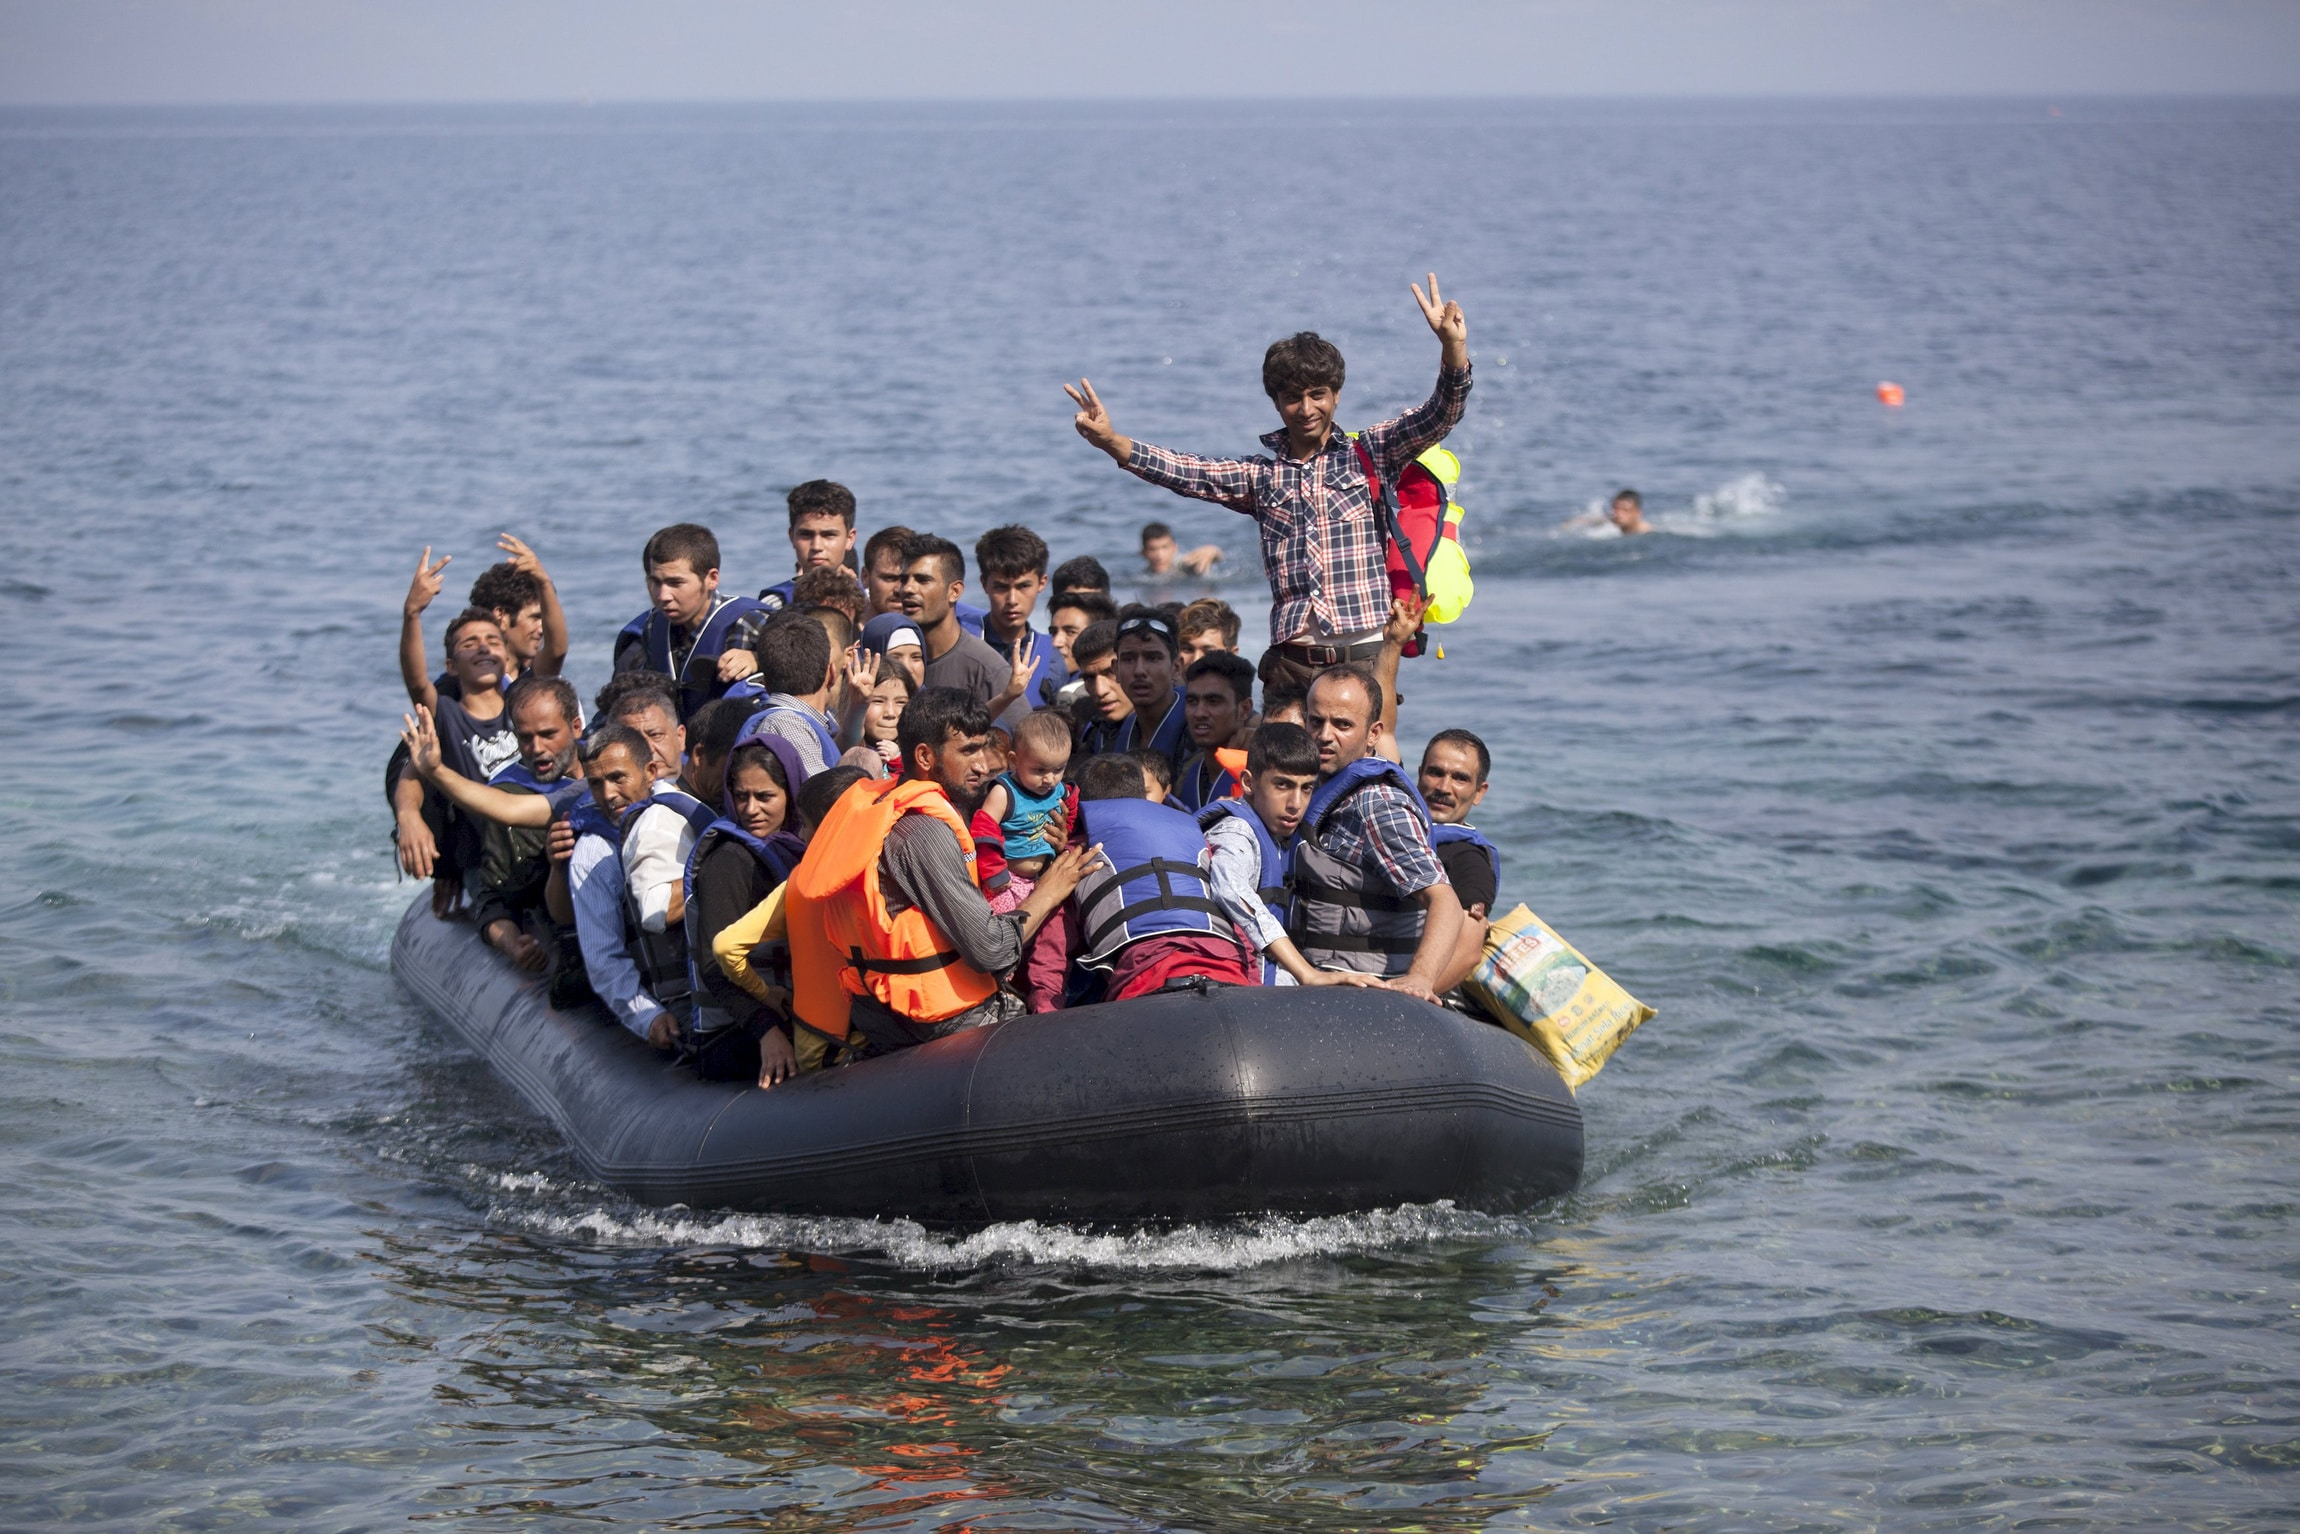 Syrian and Afghan refugees on a dinghy wave as they approach the Greek island of Lesbos on 3 September. The International Organisation for Migration says 1500-2000 refugees are taking the route through Greece, Macedonia and Serbia to Hungary every day. The number is expected to rise to 3000.  Photo: CNS/Dimitris Michalakis, Reuters